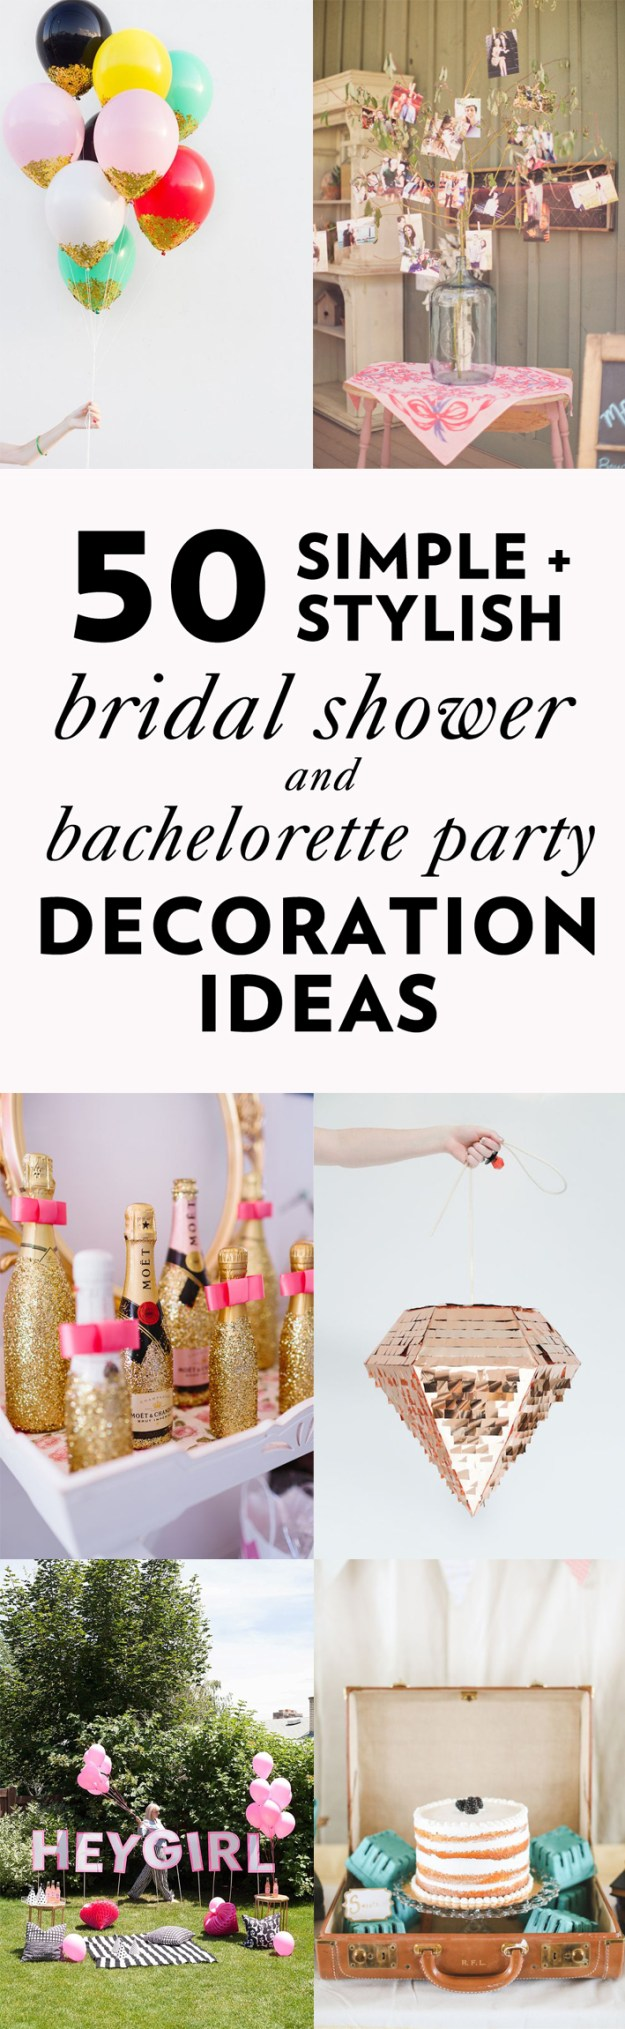 50 Simple and Stylish DIY Bridal Shower & Bachelorette Decoration Ideas from Ultimate Bridesmaid